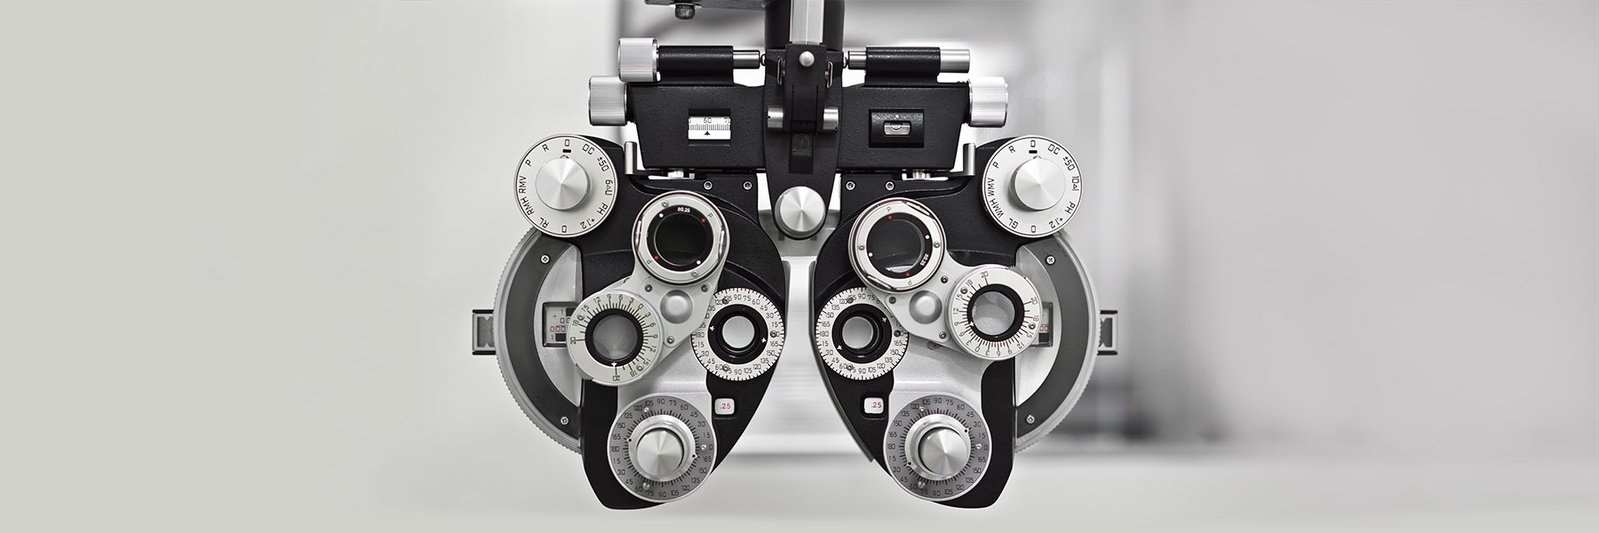 Going for an eye exam? Here's what you need to know